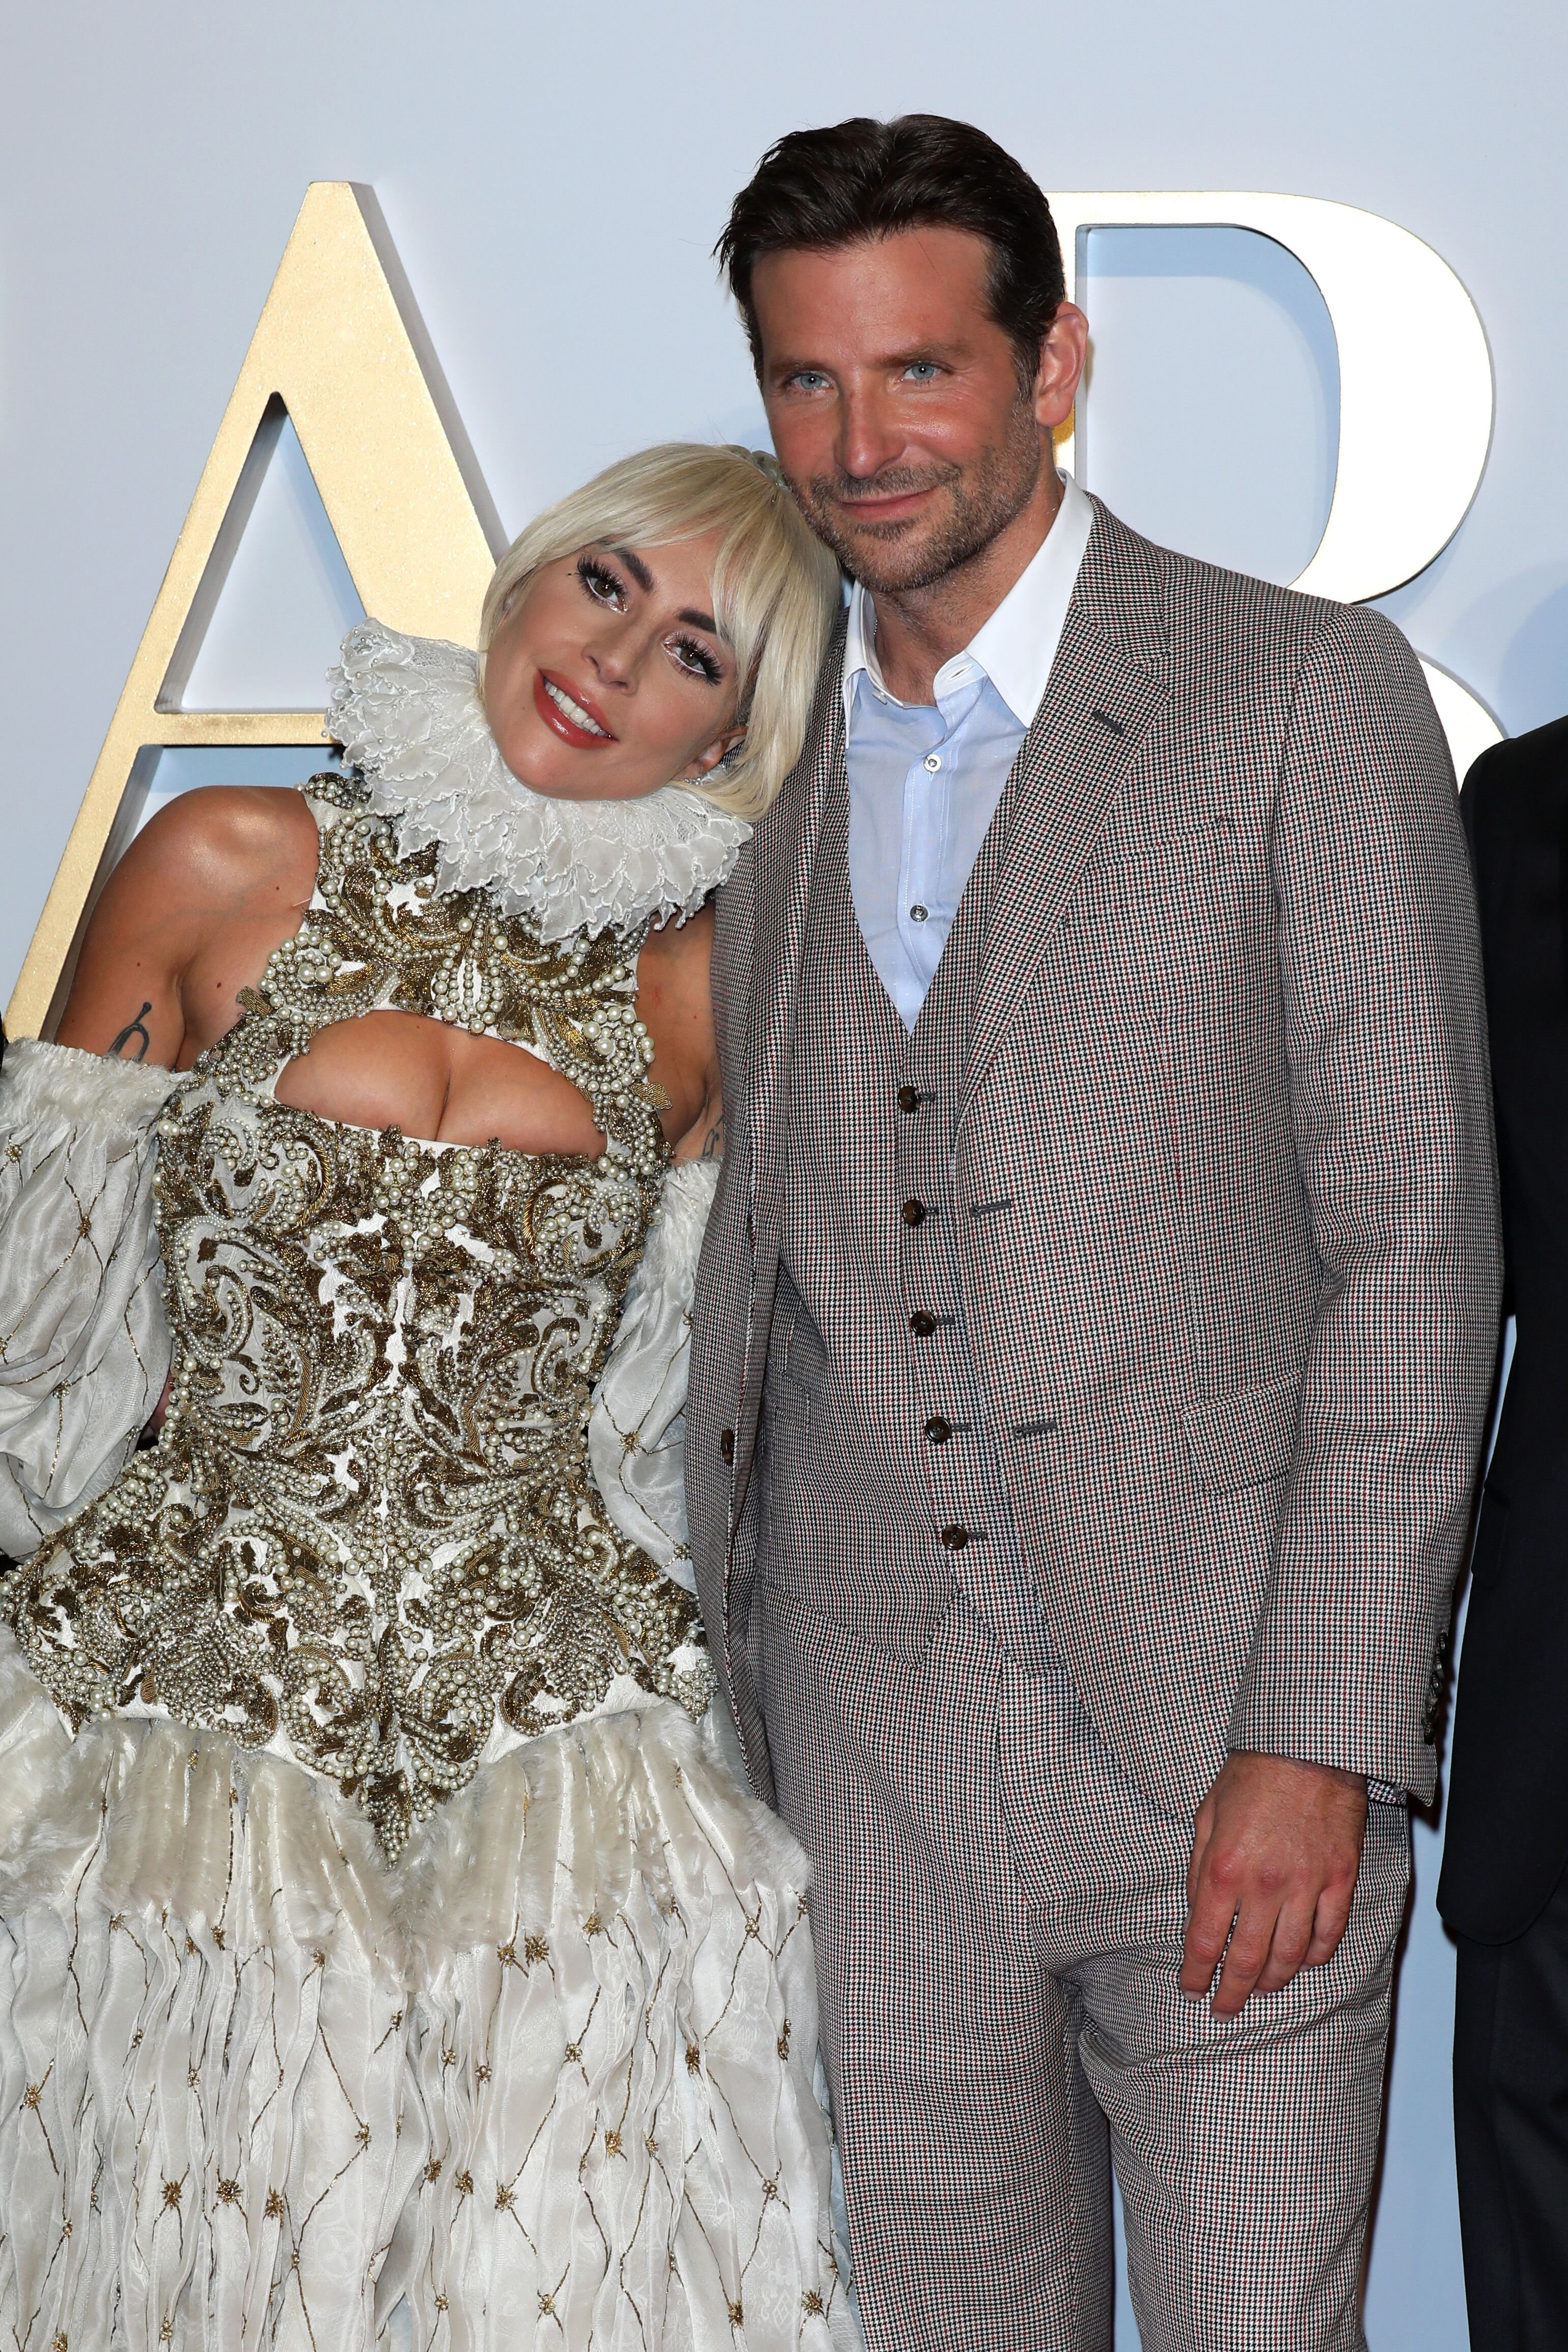 Lady Gaga and Bradley Cooper attend the UK premiere of 'A Star Is Born' held at Vue West End on September 27, 2018 in London, England | Photo: Getty Images